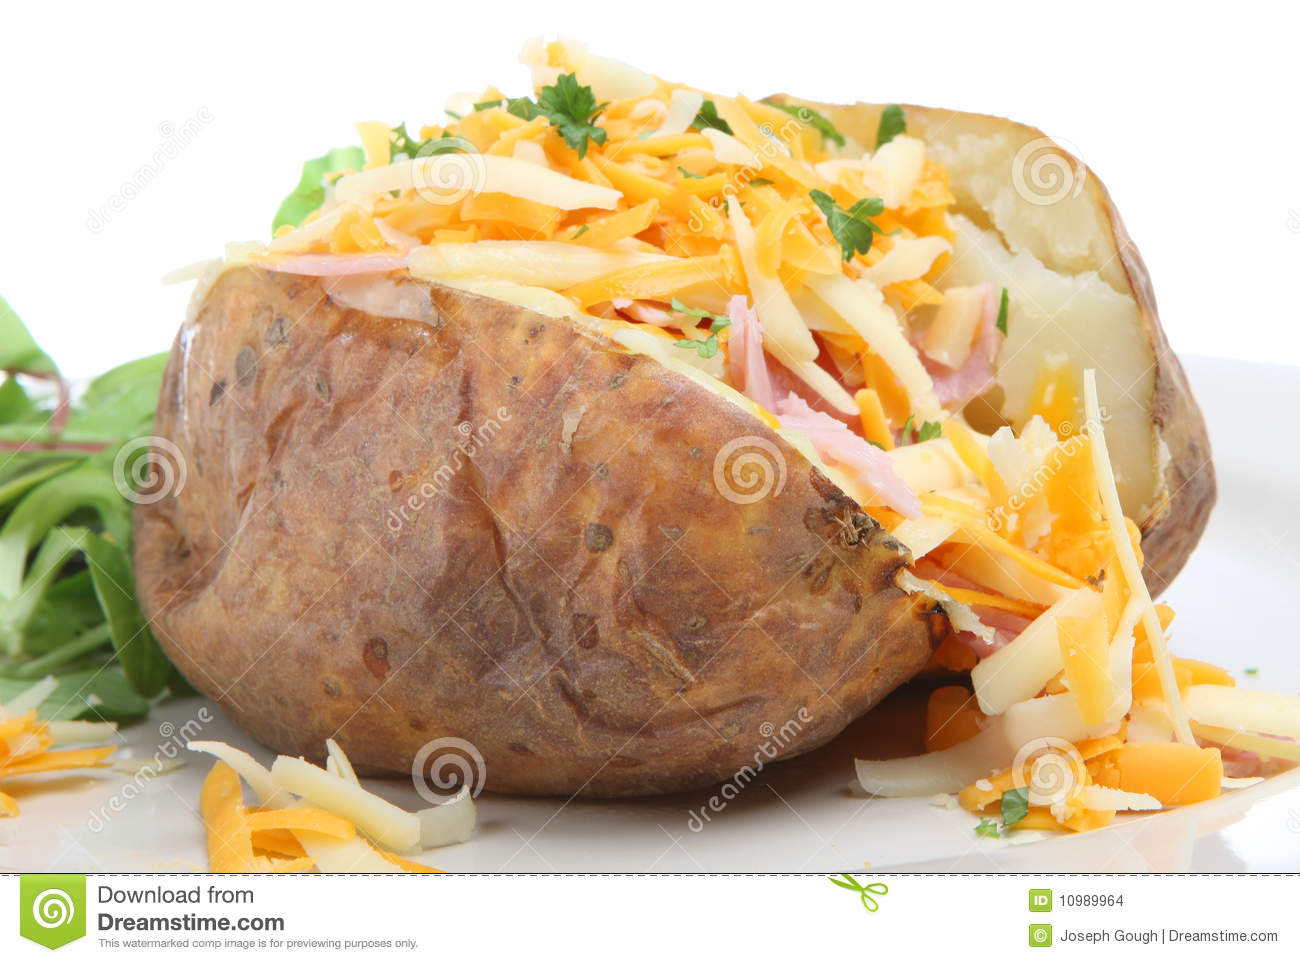 how to draw a baked potato